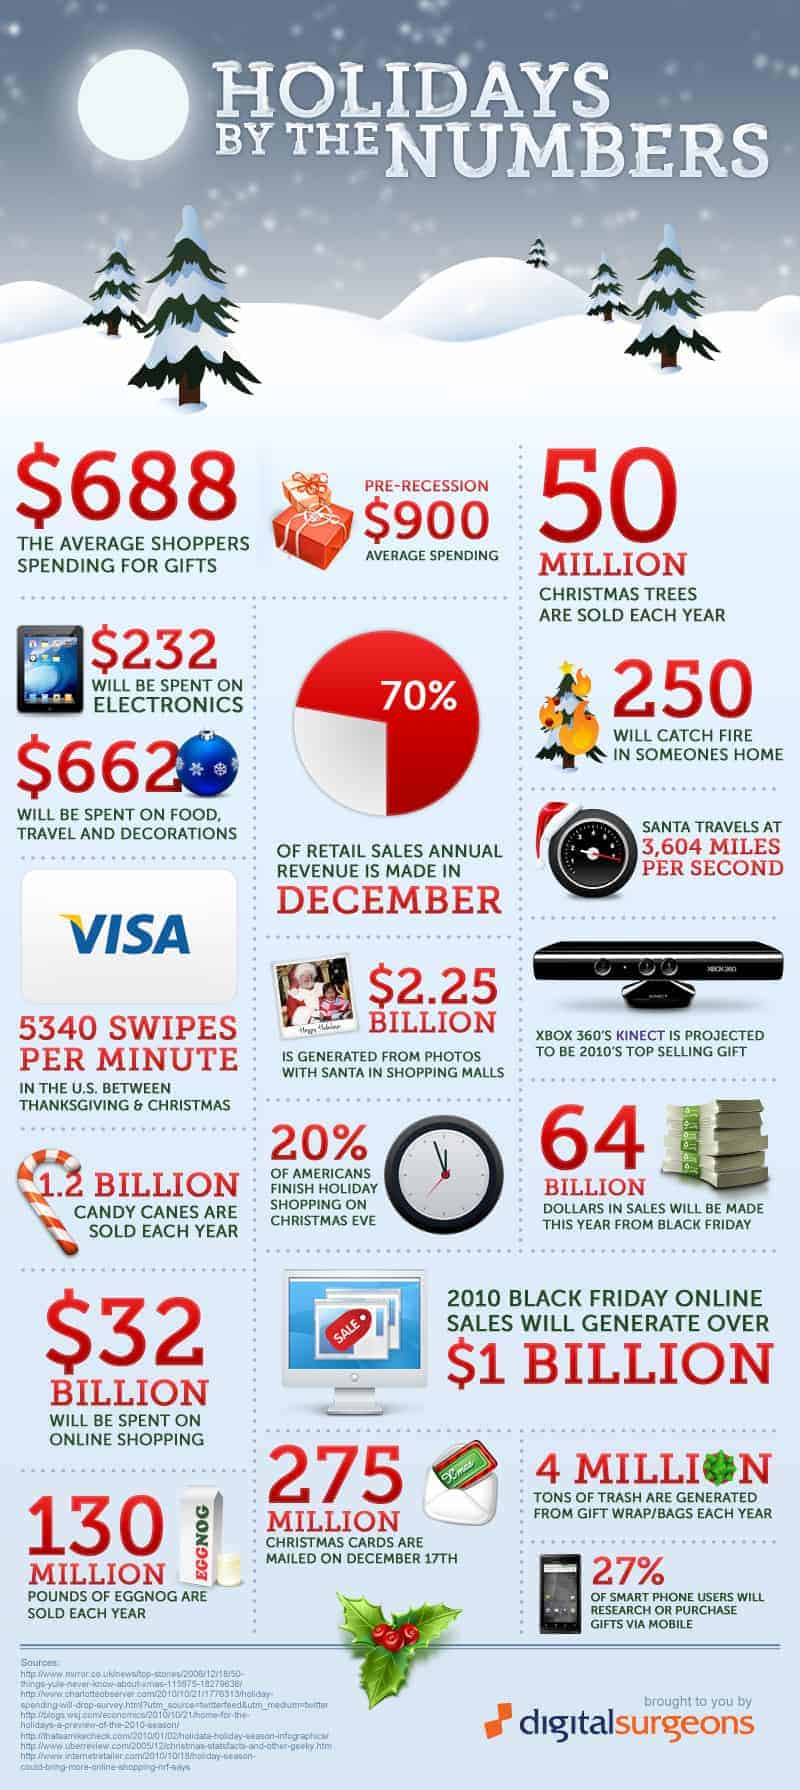 Holidays by the numbers daily infographic